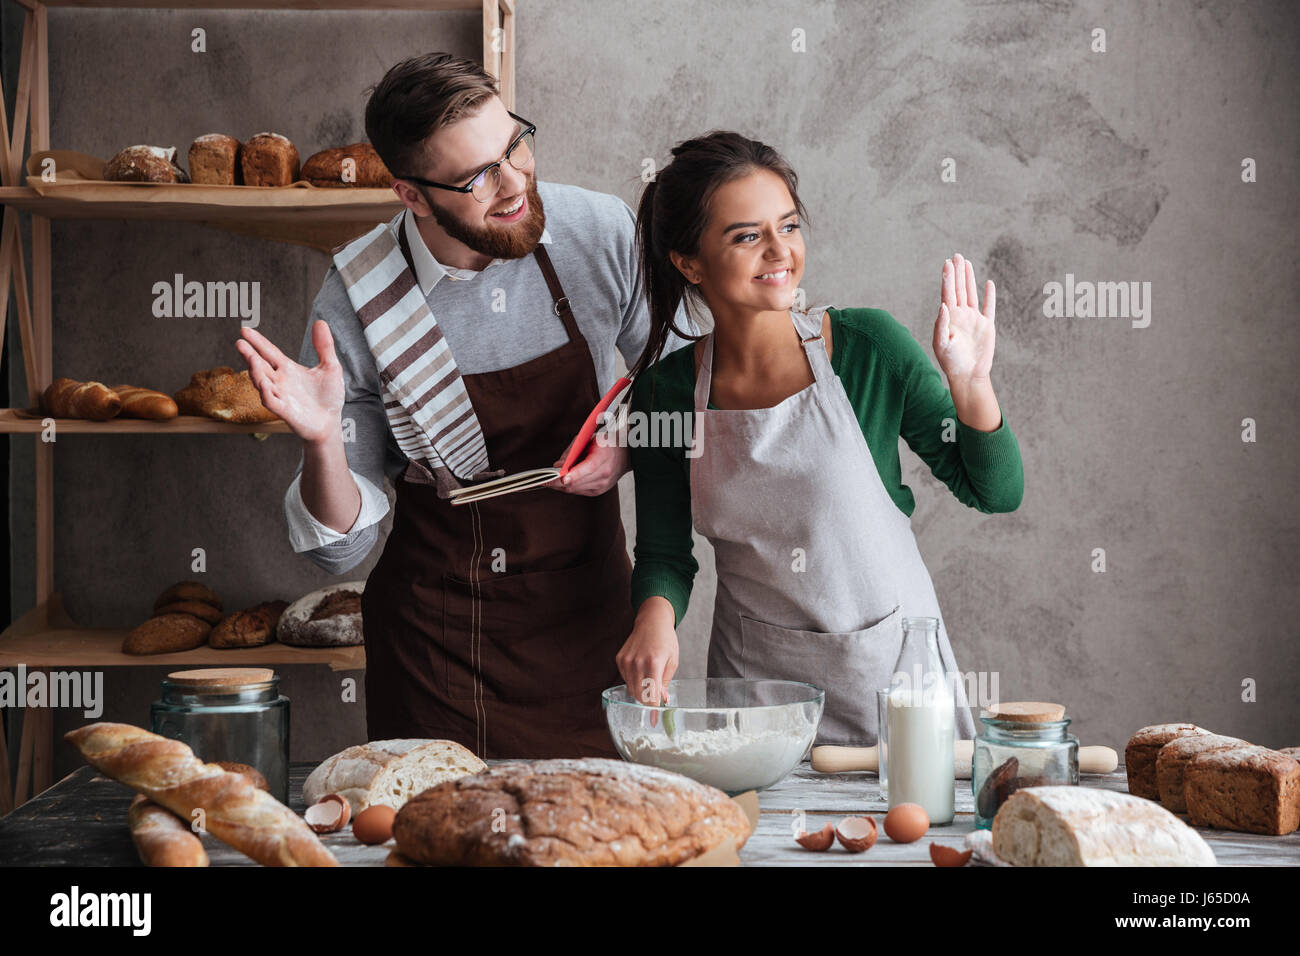 Happy couple looking away wile cooking bread and greeting with someone - Stock Image